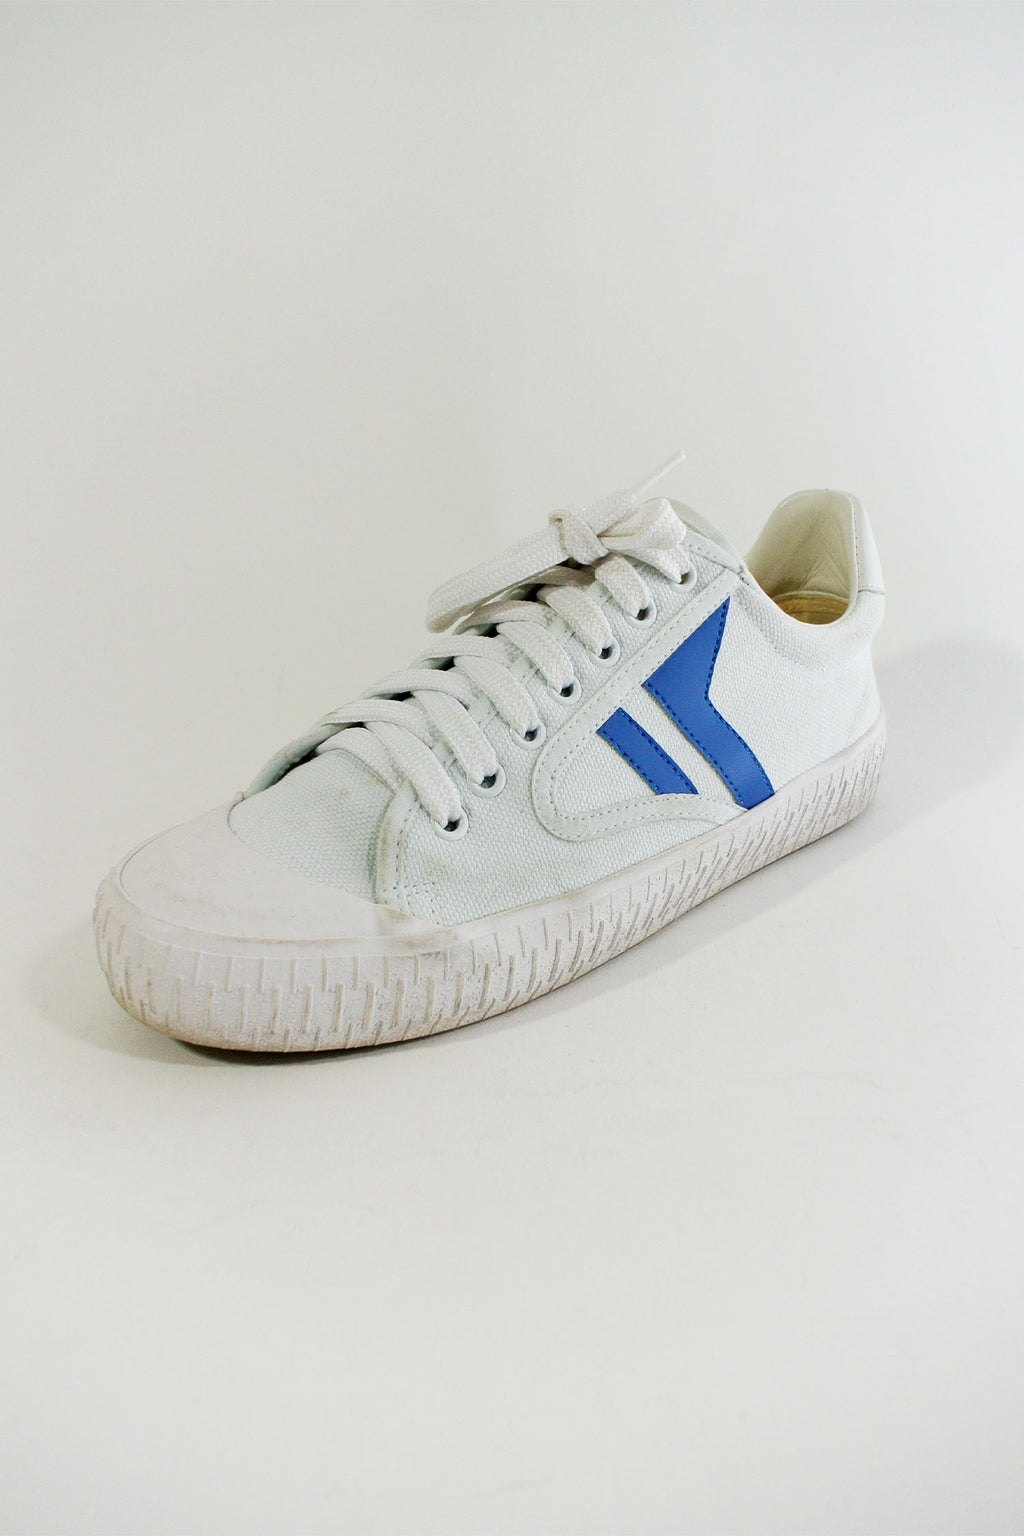 Celine Canvas Low-Top Sneakers sz 38 (Phoebo Philo)